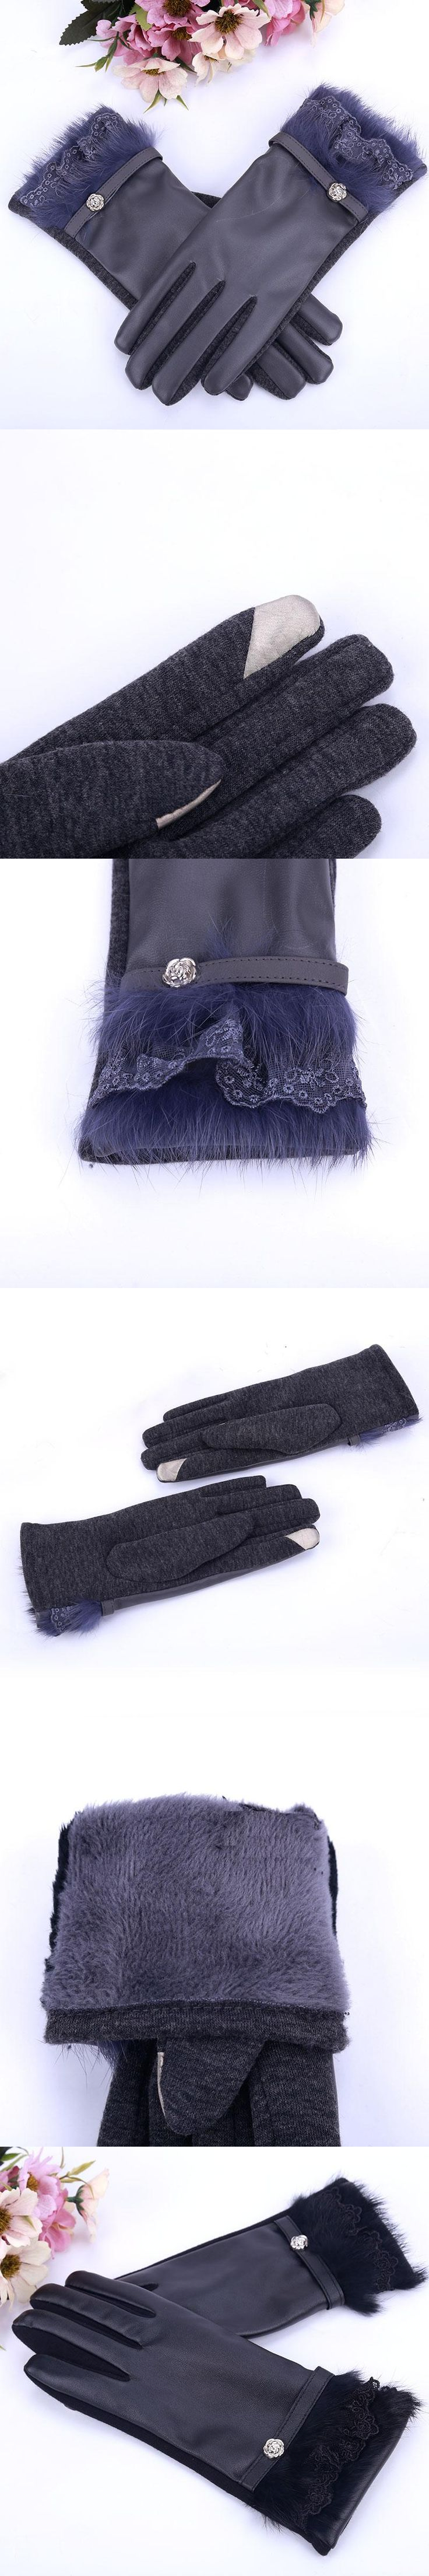 Real Rabbit Fur Glove PU Leather for Women Anti-slip Warm Winter Gloves Lady Mittens Genuine Fur Female PU Leather Gloves Thick